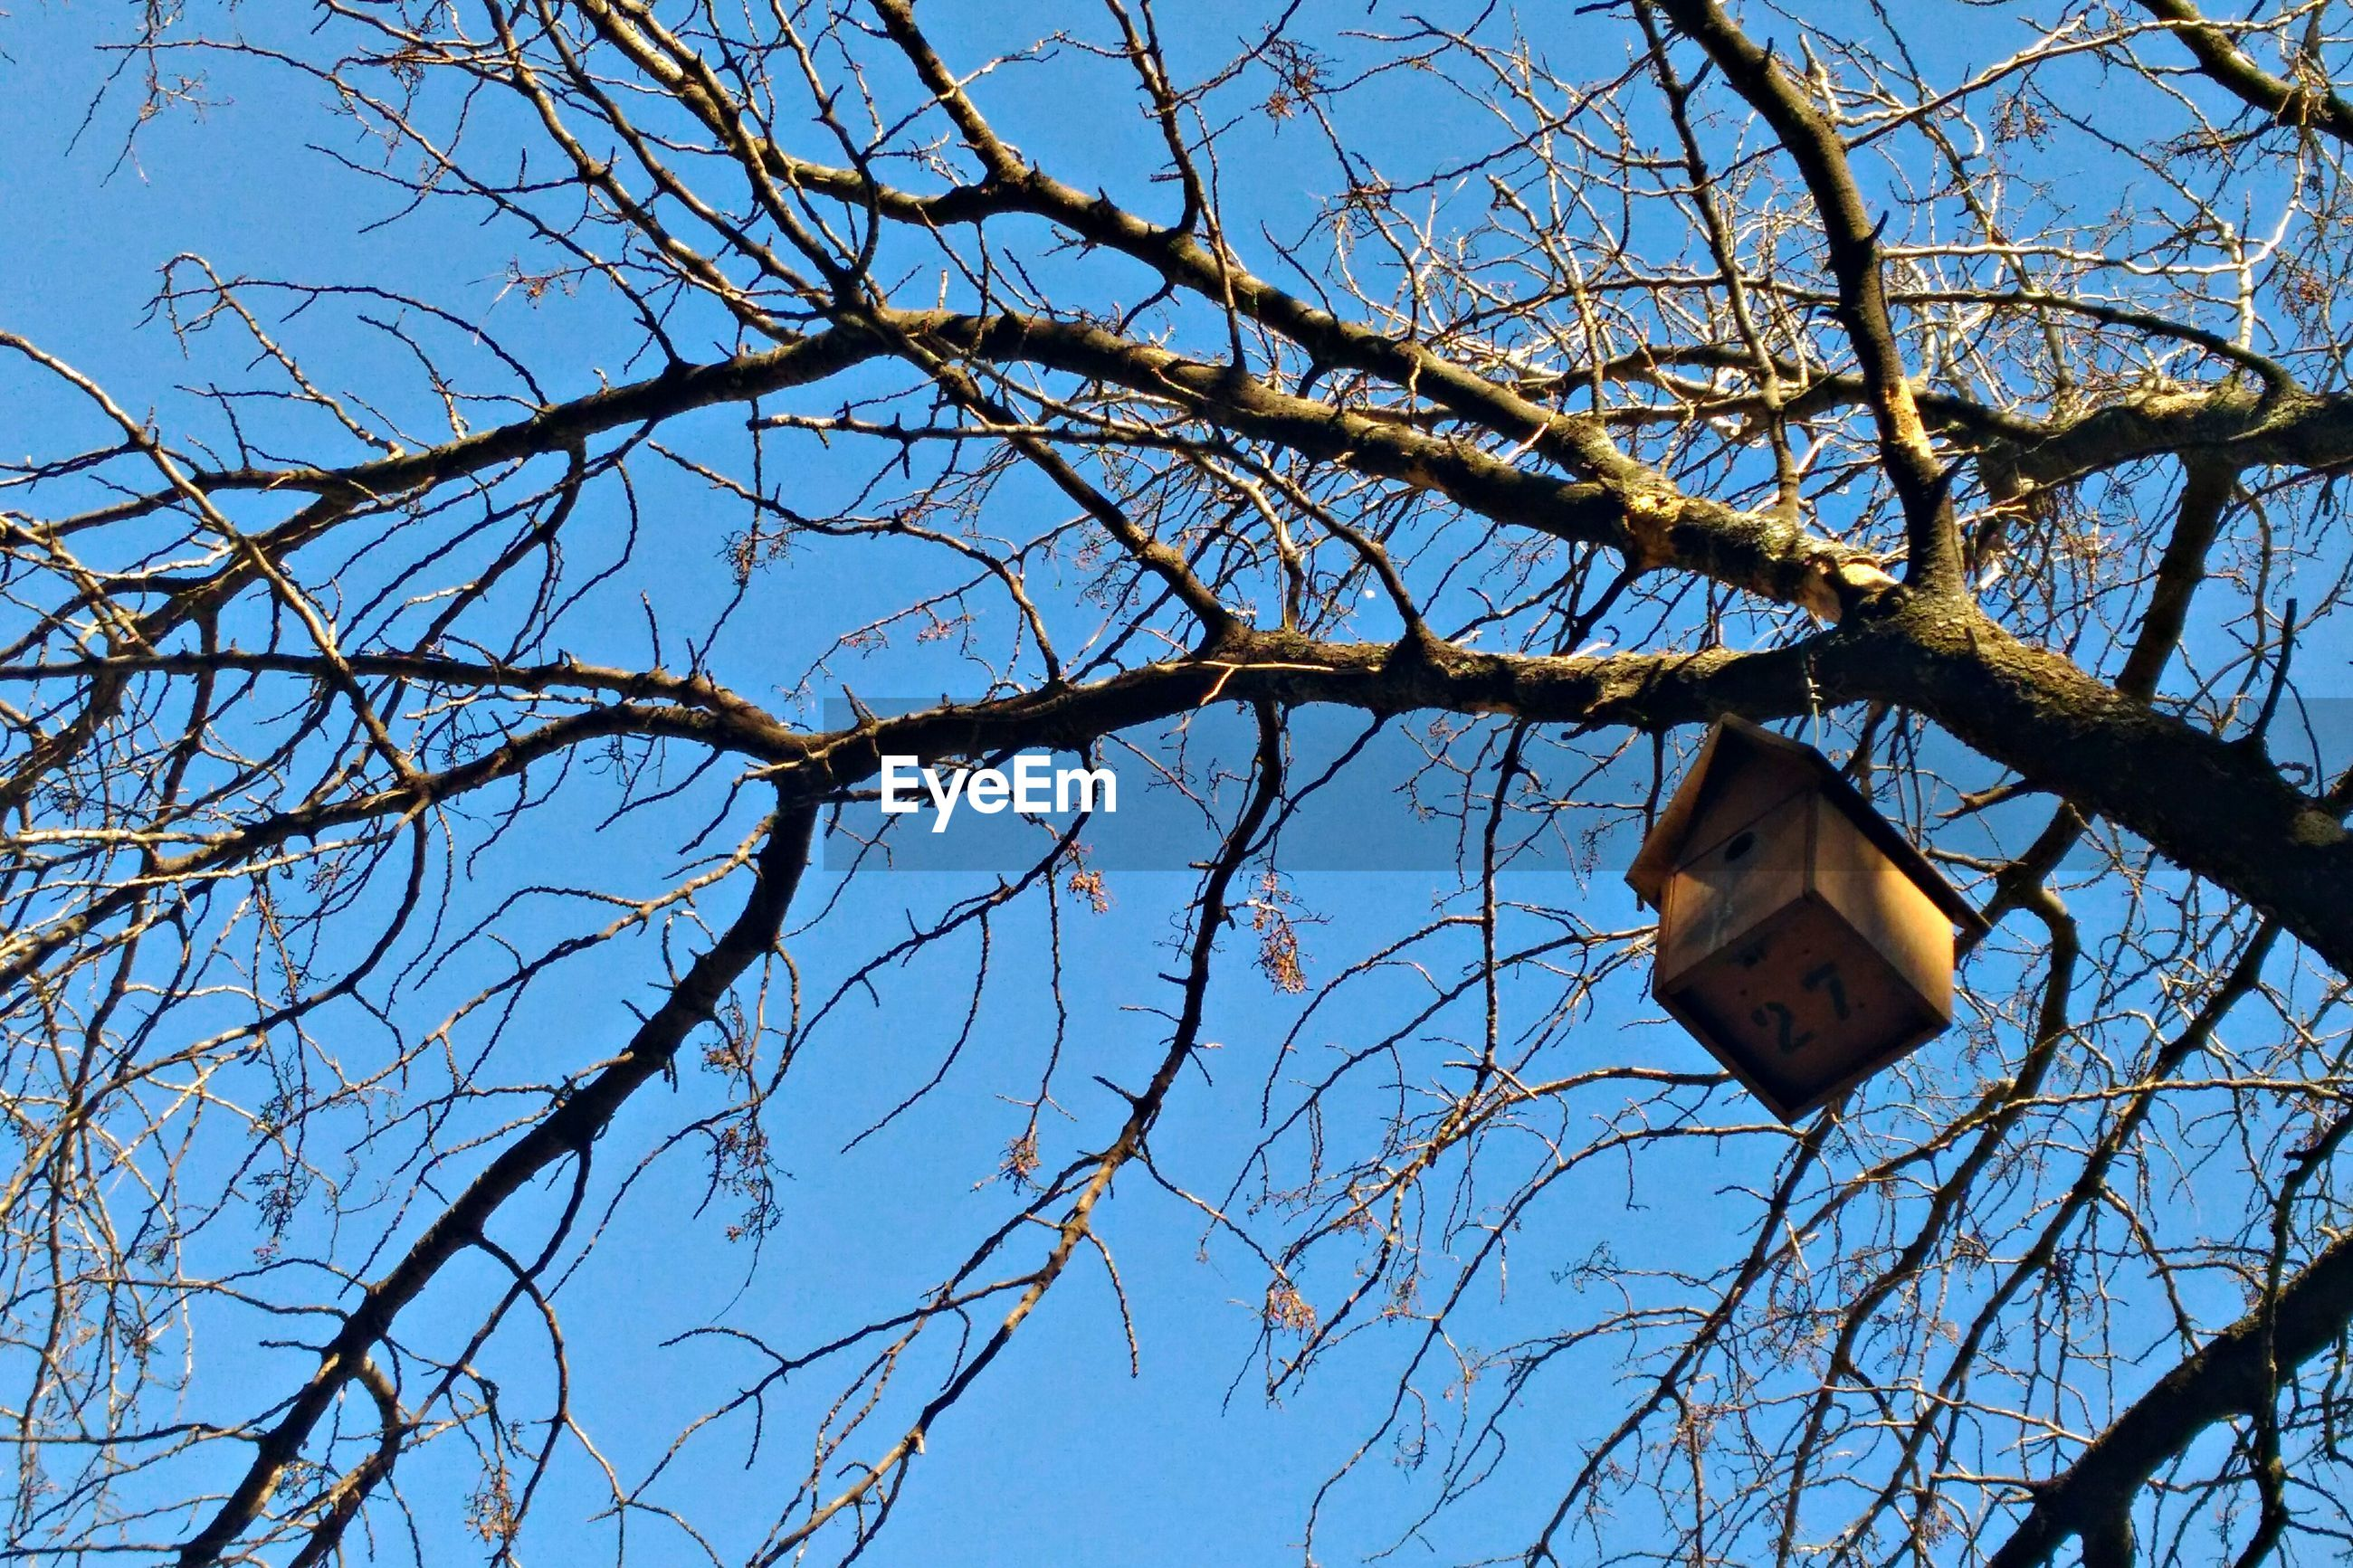 Low angle view of birdhouse hanging on bare tree